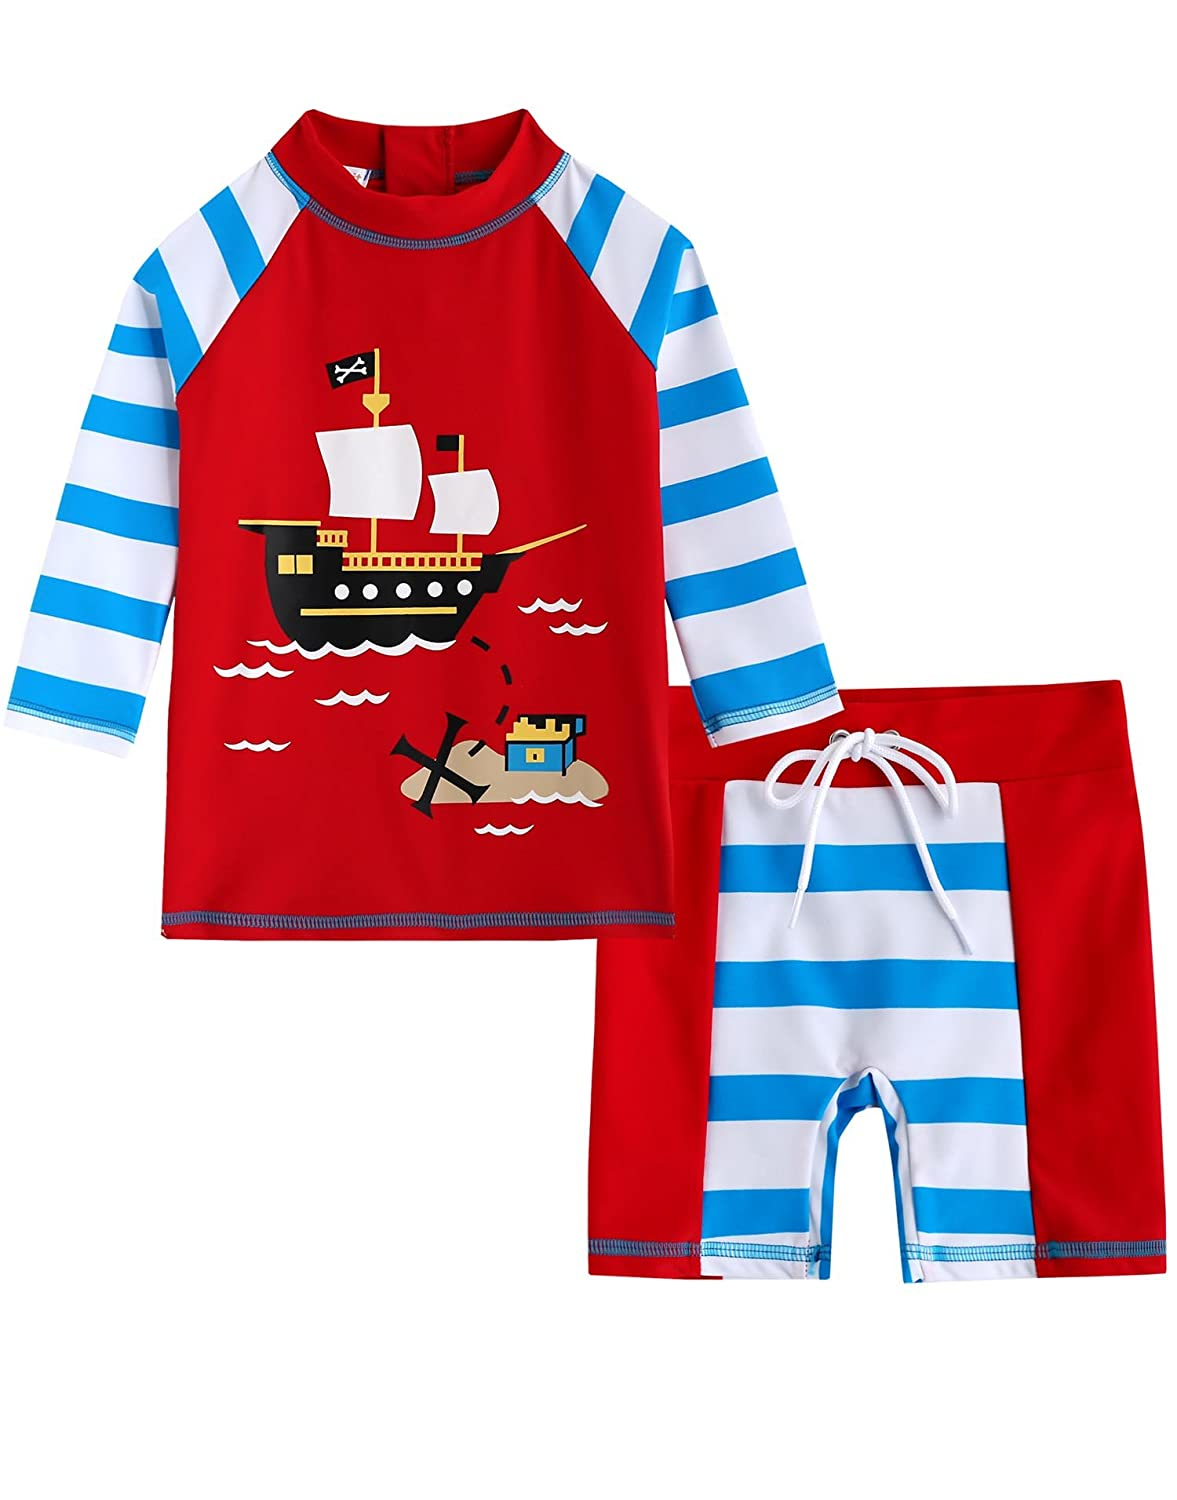 [Free Shipping]Vaenait Baby 2-7 Years Infant Boys Rashguard swimsuit Marine Pirate BSW_024